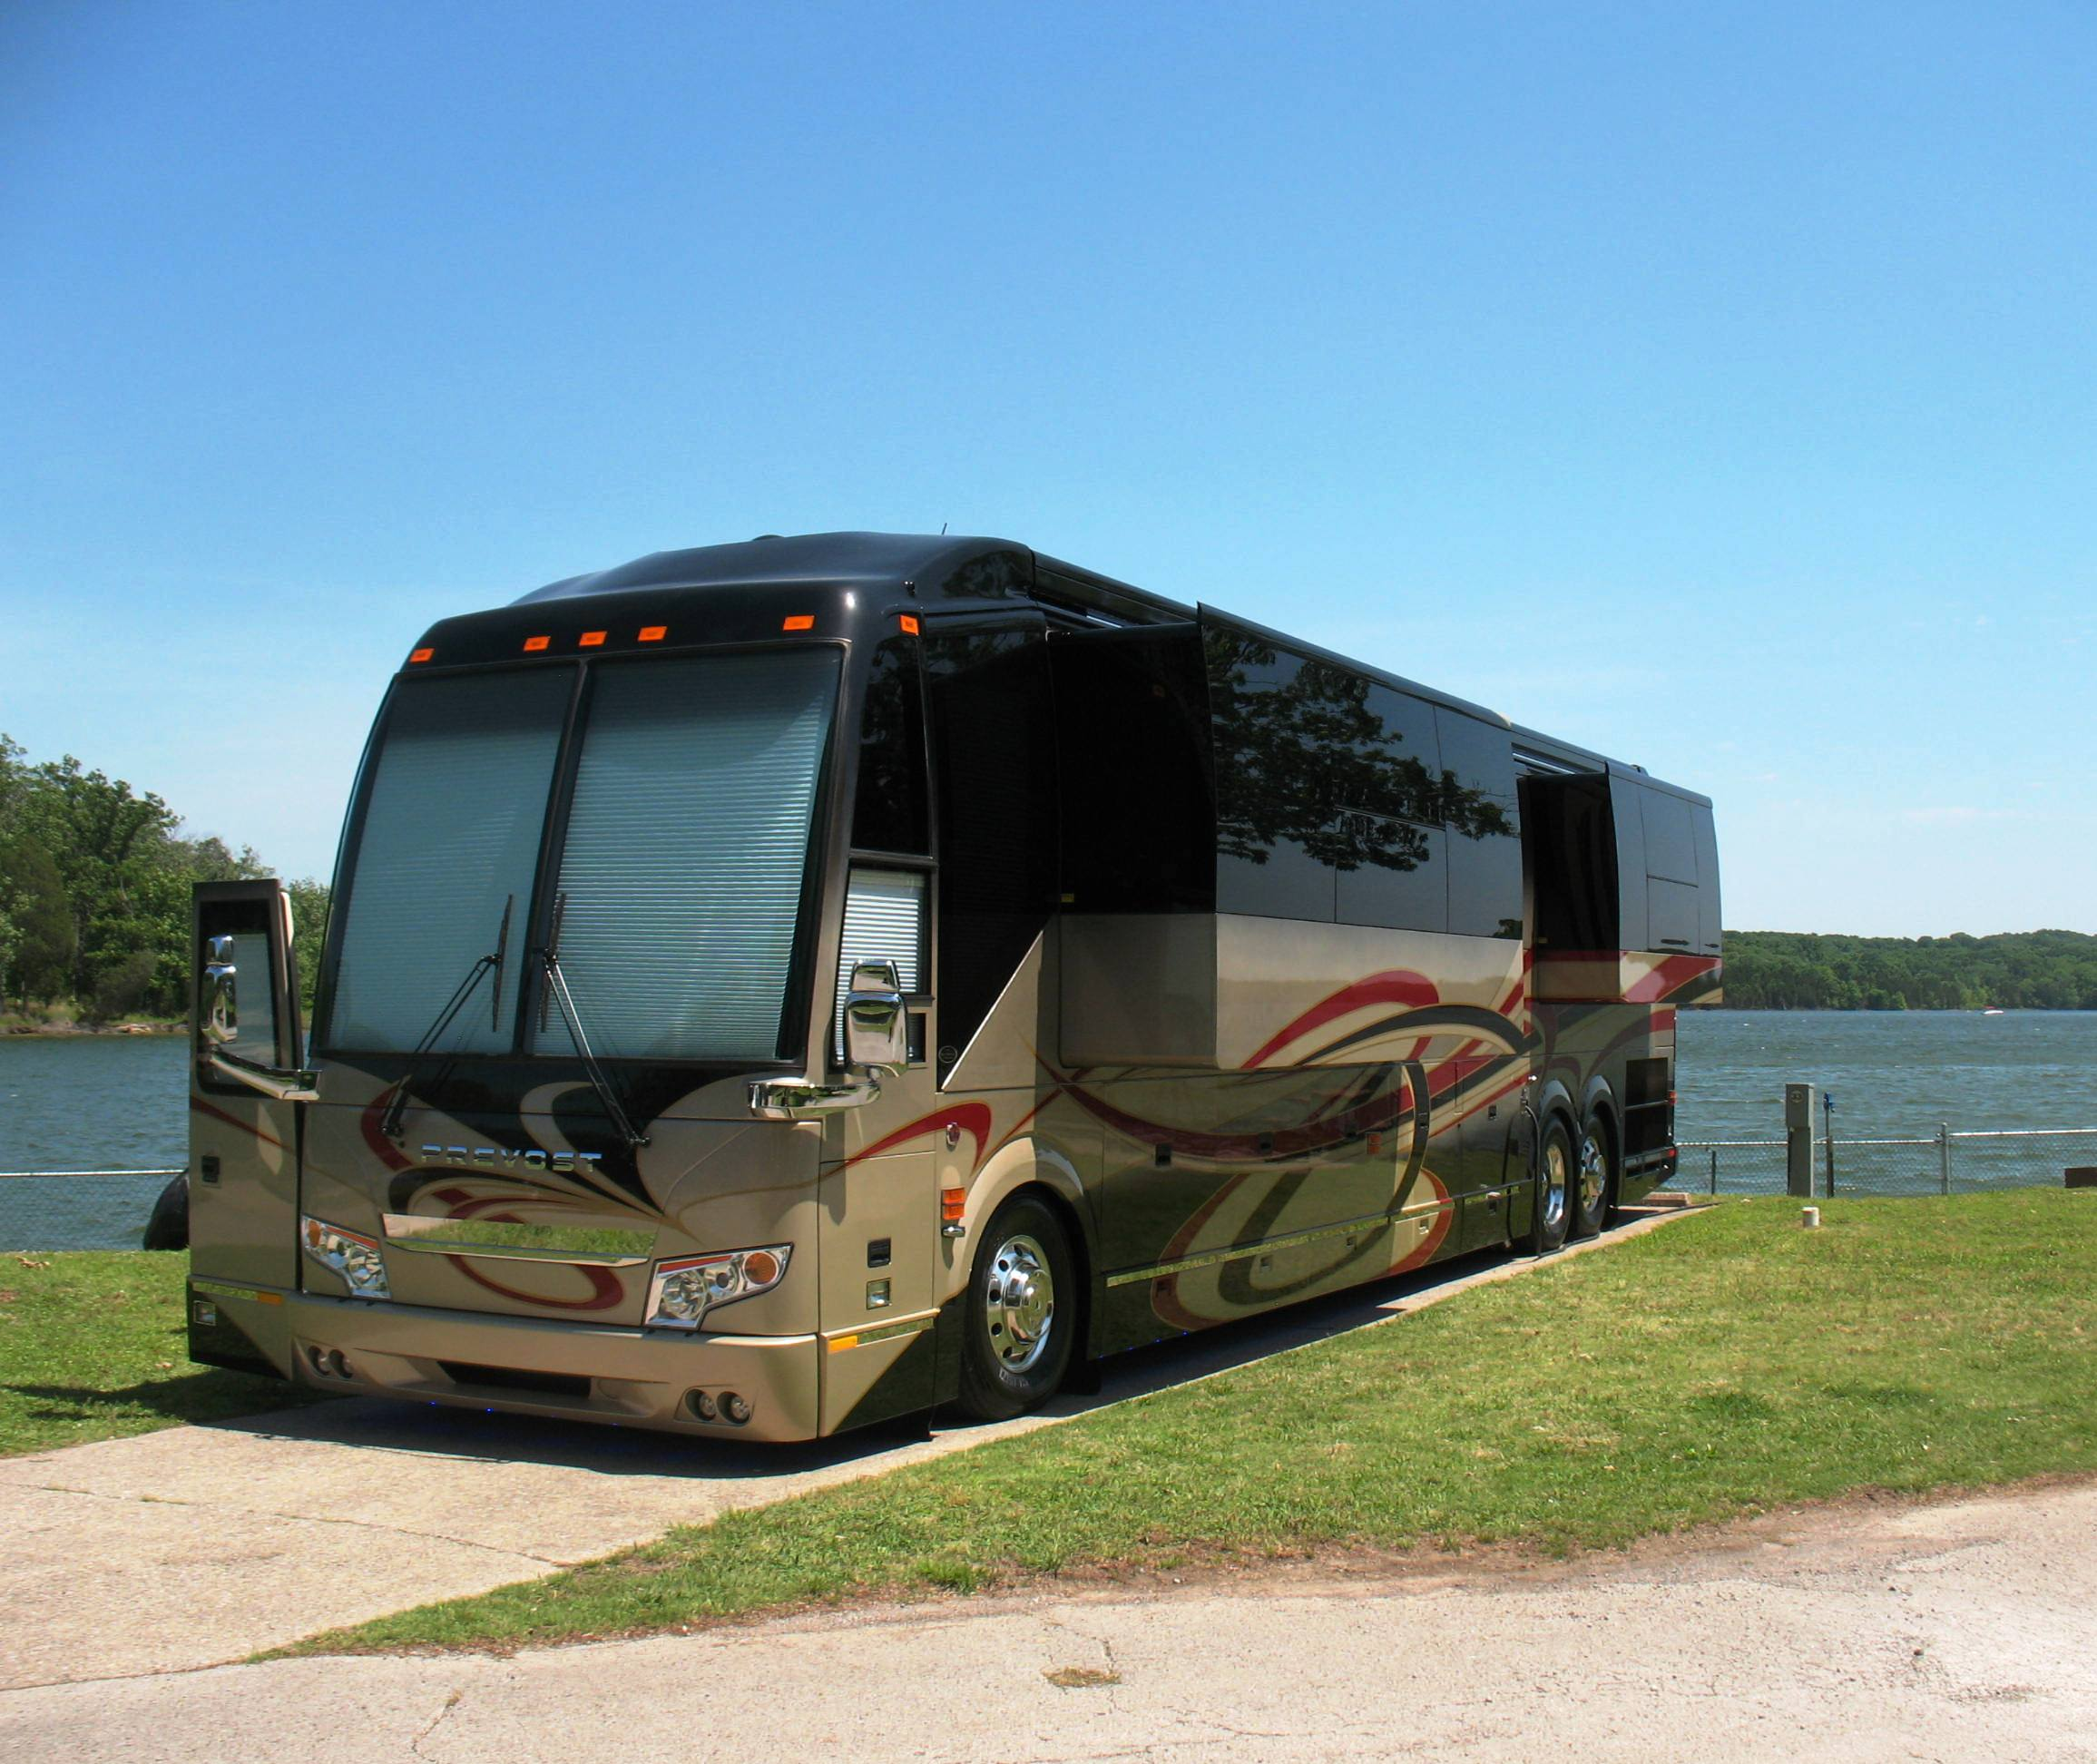 Nashville Shores Lakeside Resort - rv site by the lake